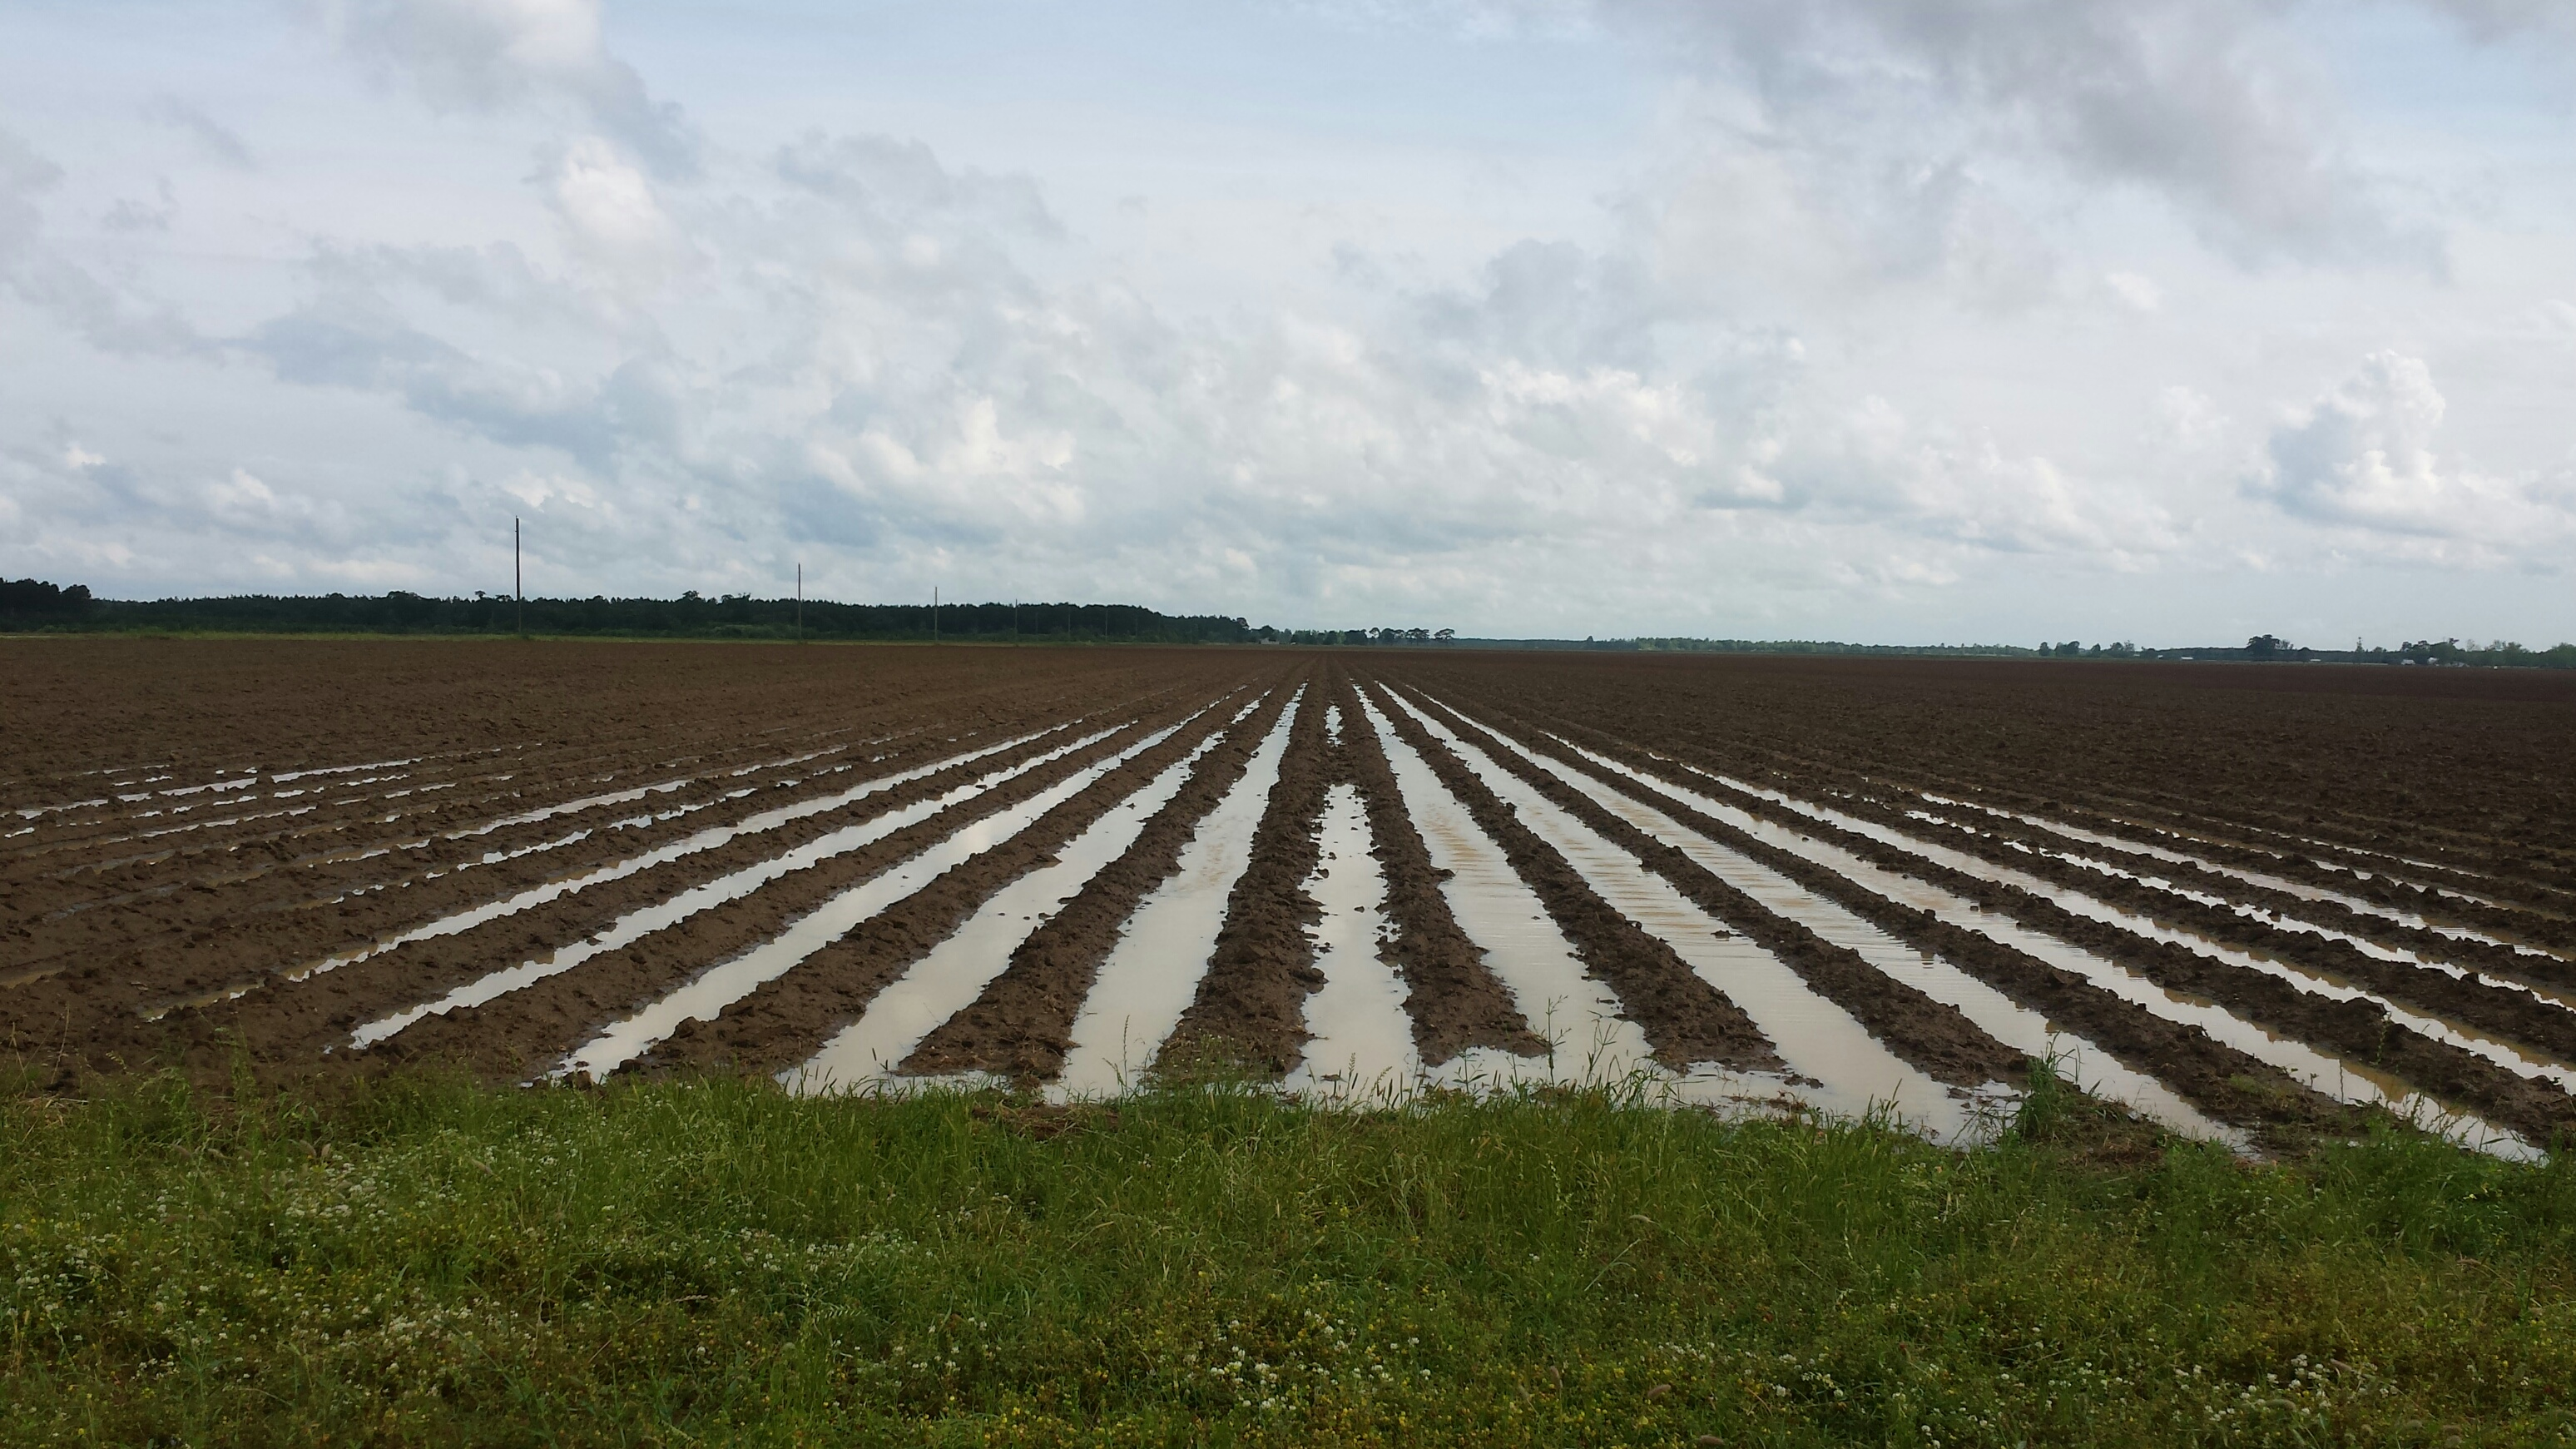 Saturated soils that had been prepared for planting.